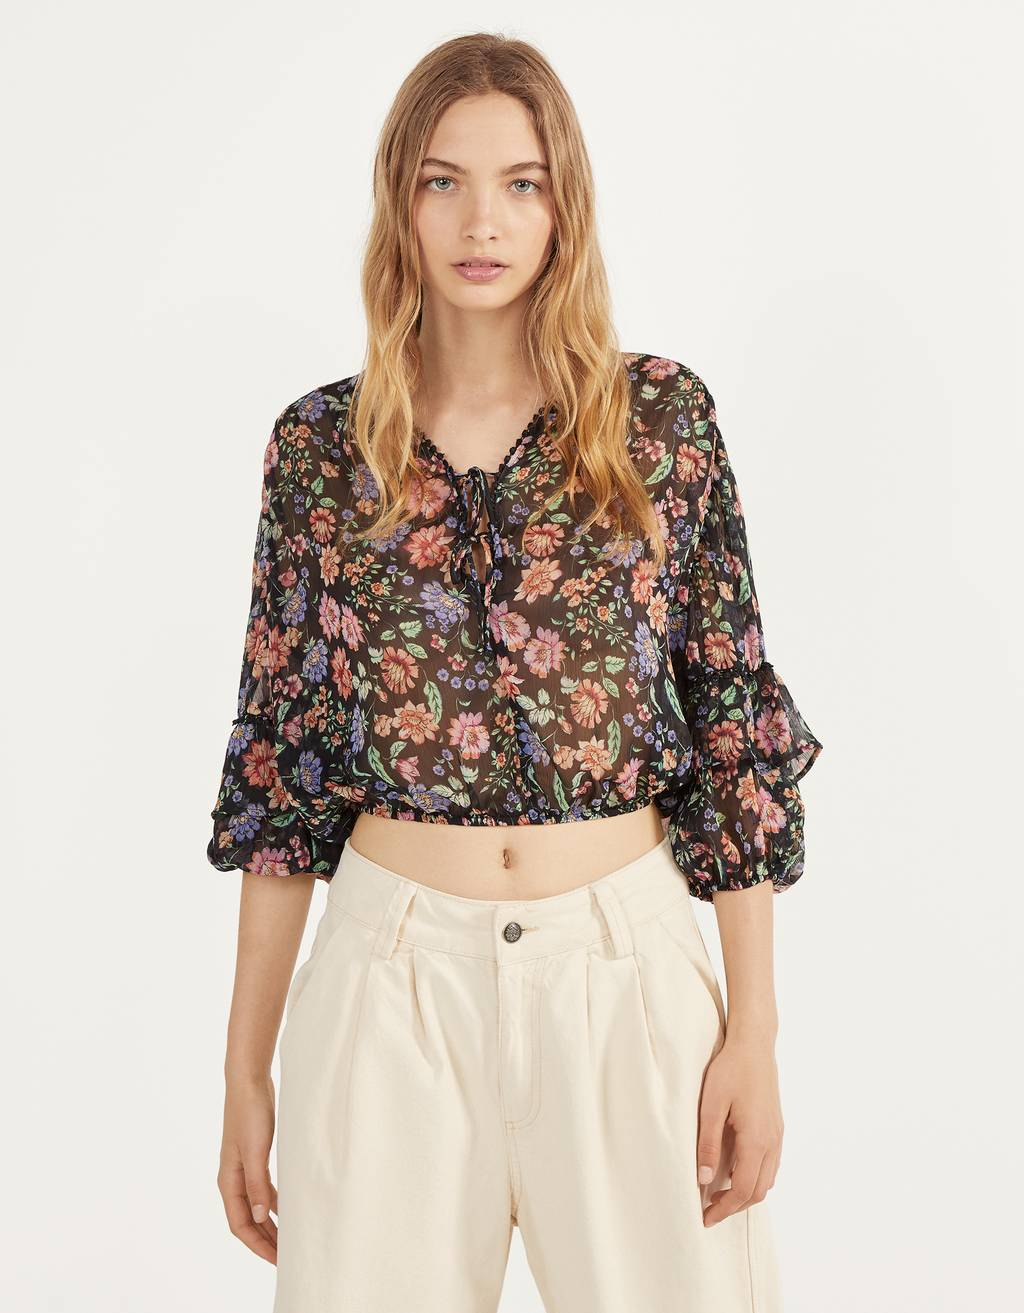 Blouse with ruffled sleeves